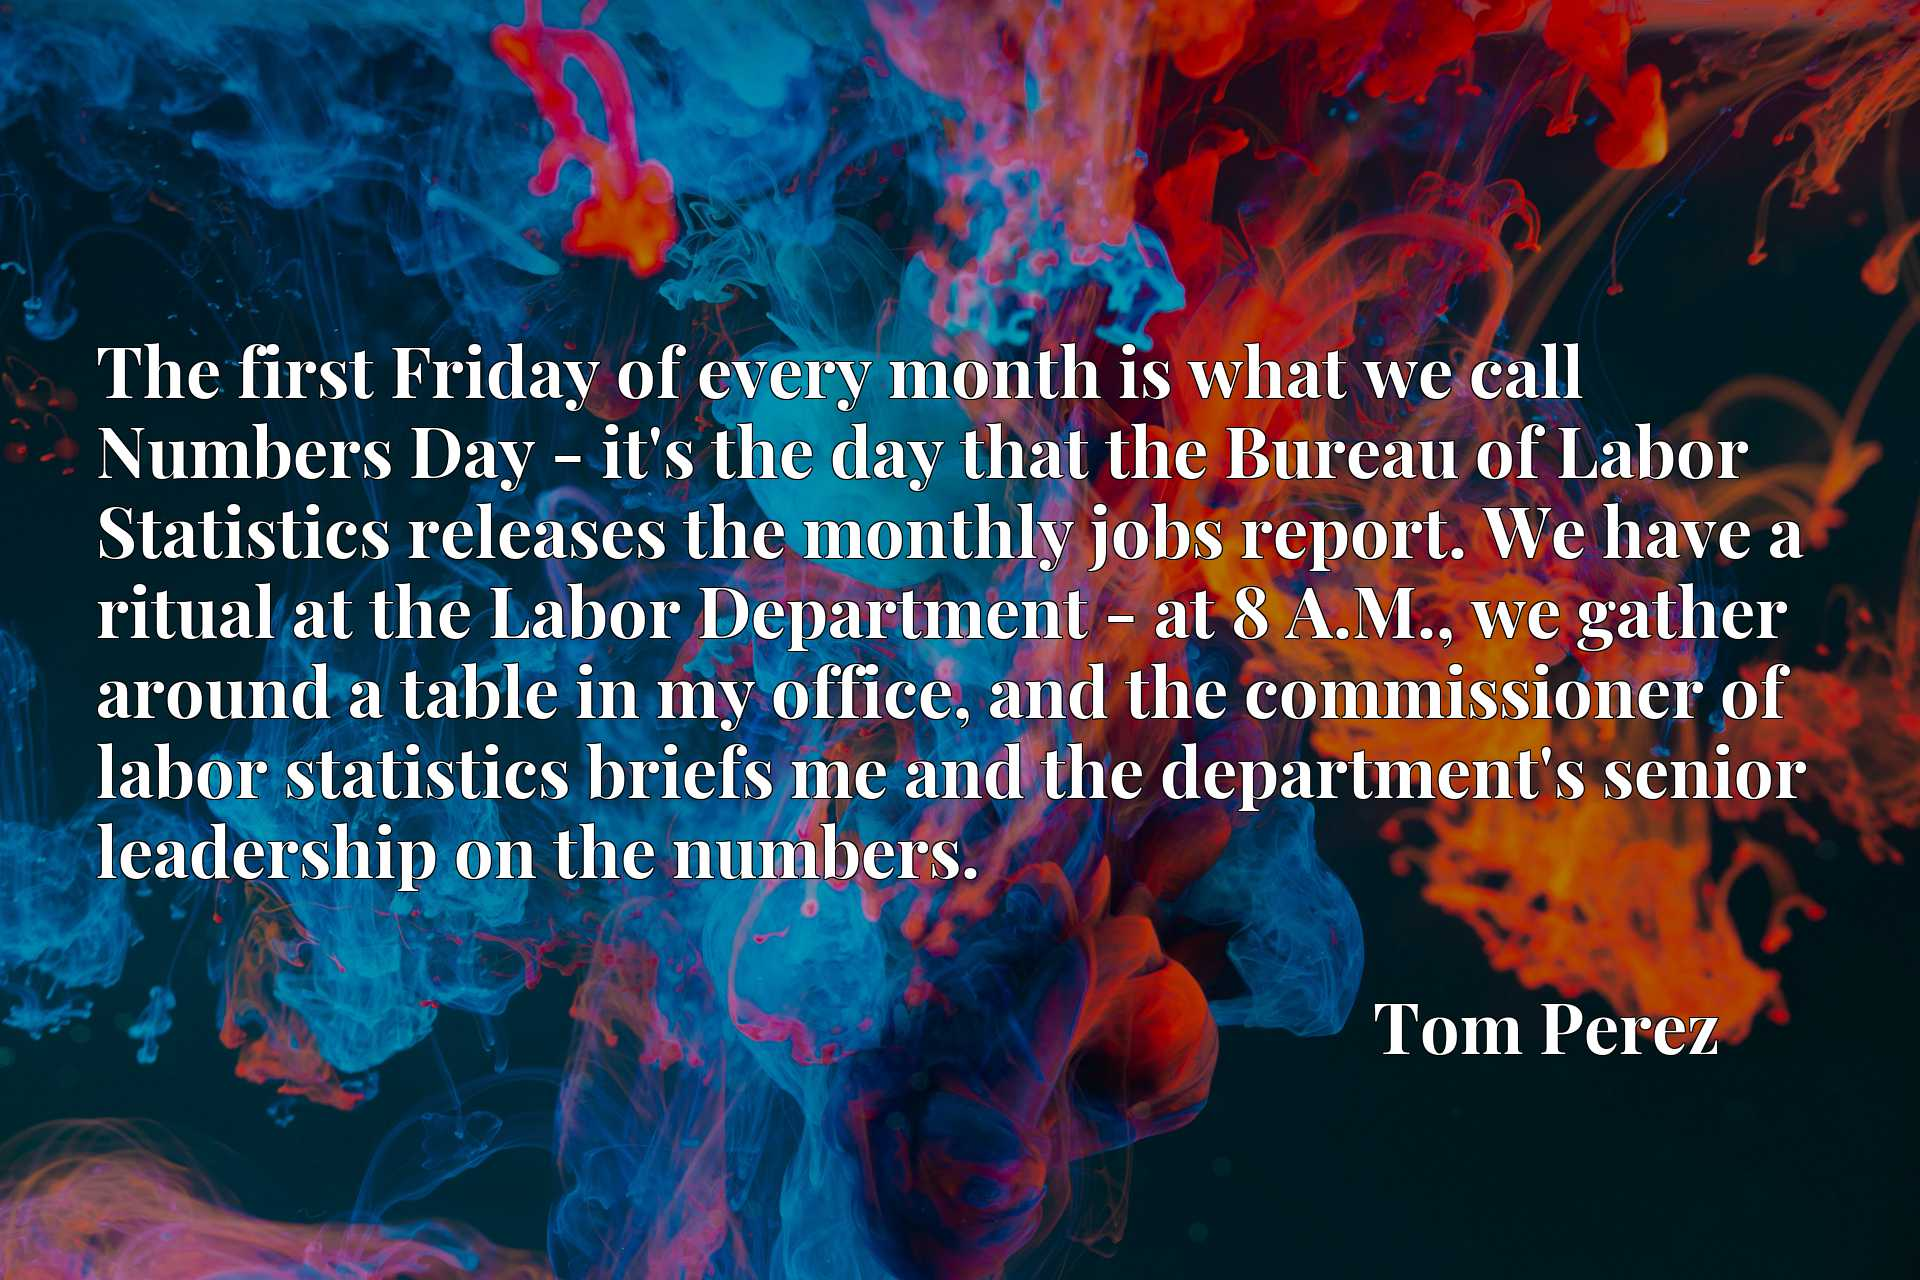 The first Friday of every month is what we call Numbers Day - it's the day that the Bureau of Labor Statistics releases the monthly jobs report. We have a ritual at the Labor Department - at 8 A.M., we gather around a table in my office, and the commissioner of labor statistics briefs me and the department's senior leadership on the numbers.